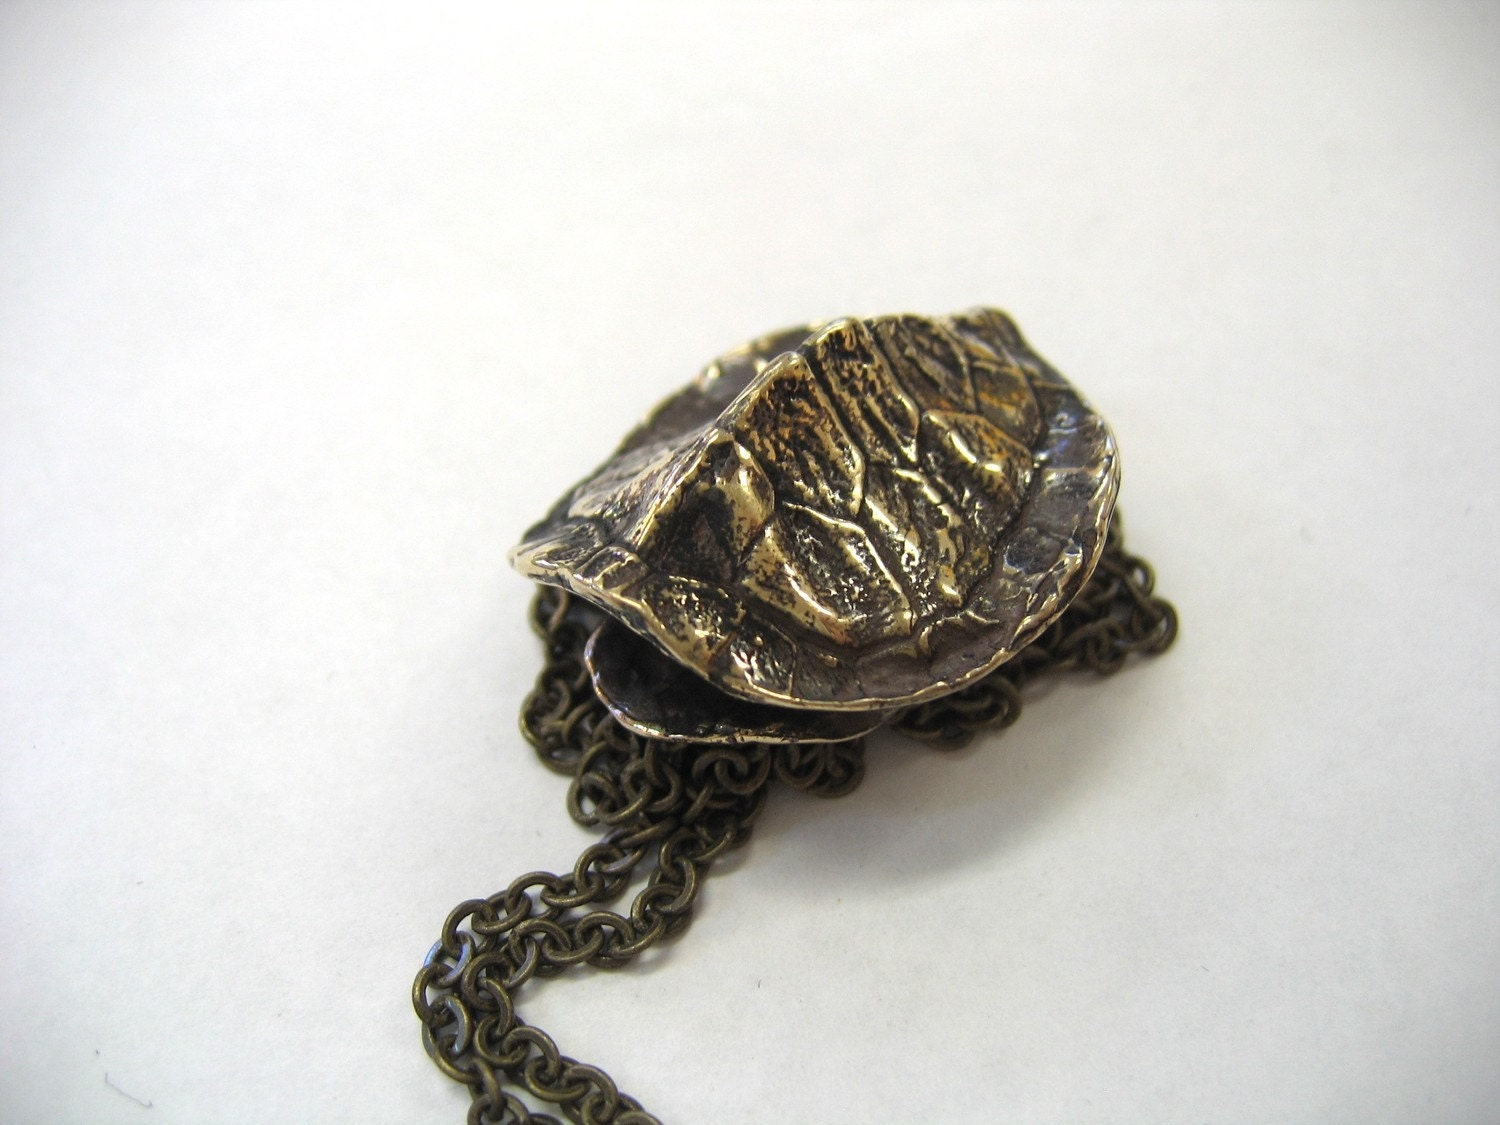 Bronze turtle shell pendant necklace 119 by mrd74 on etsy for Real tortoise shell jewelry